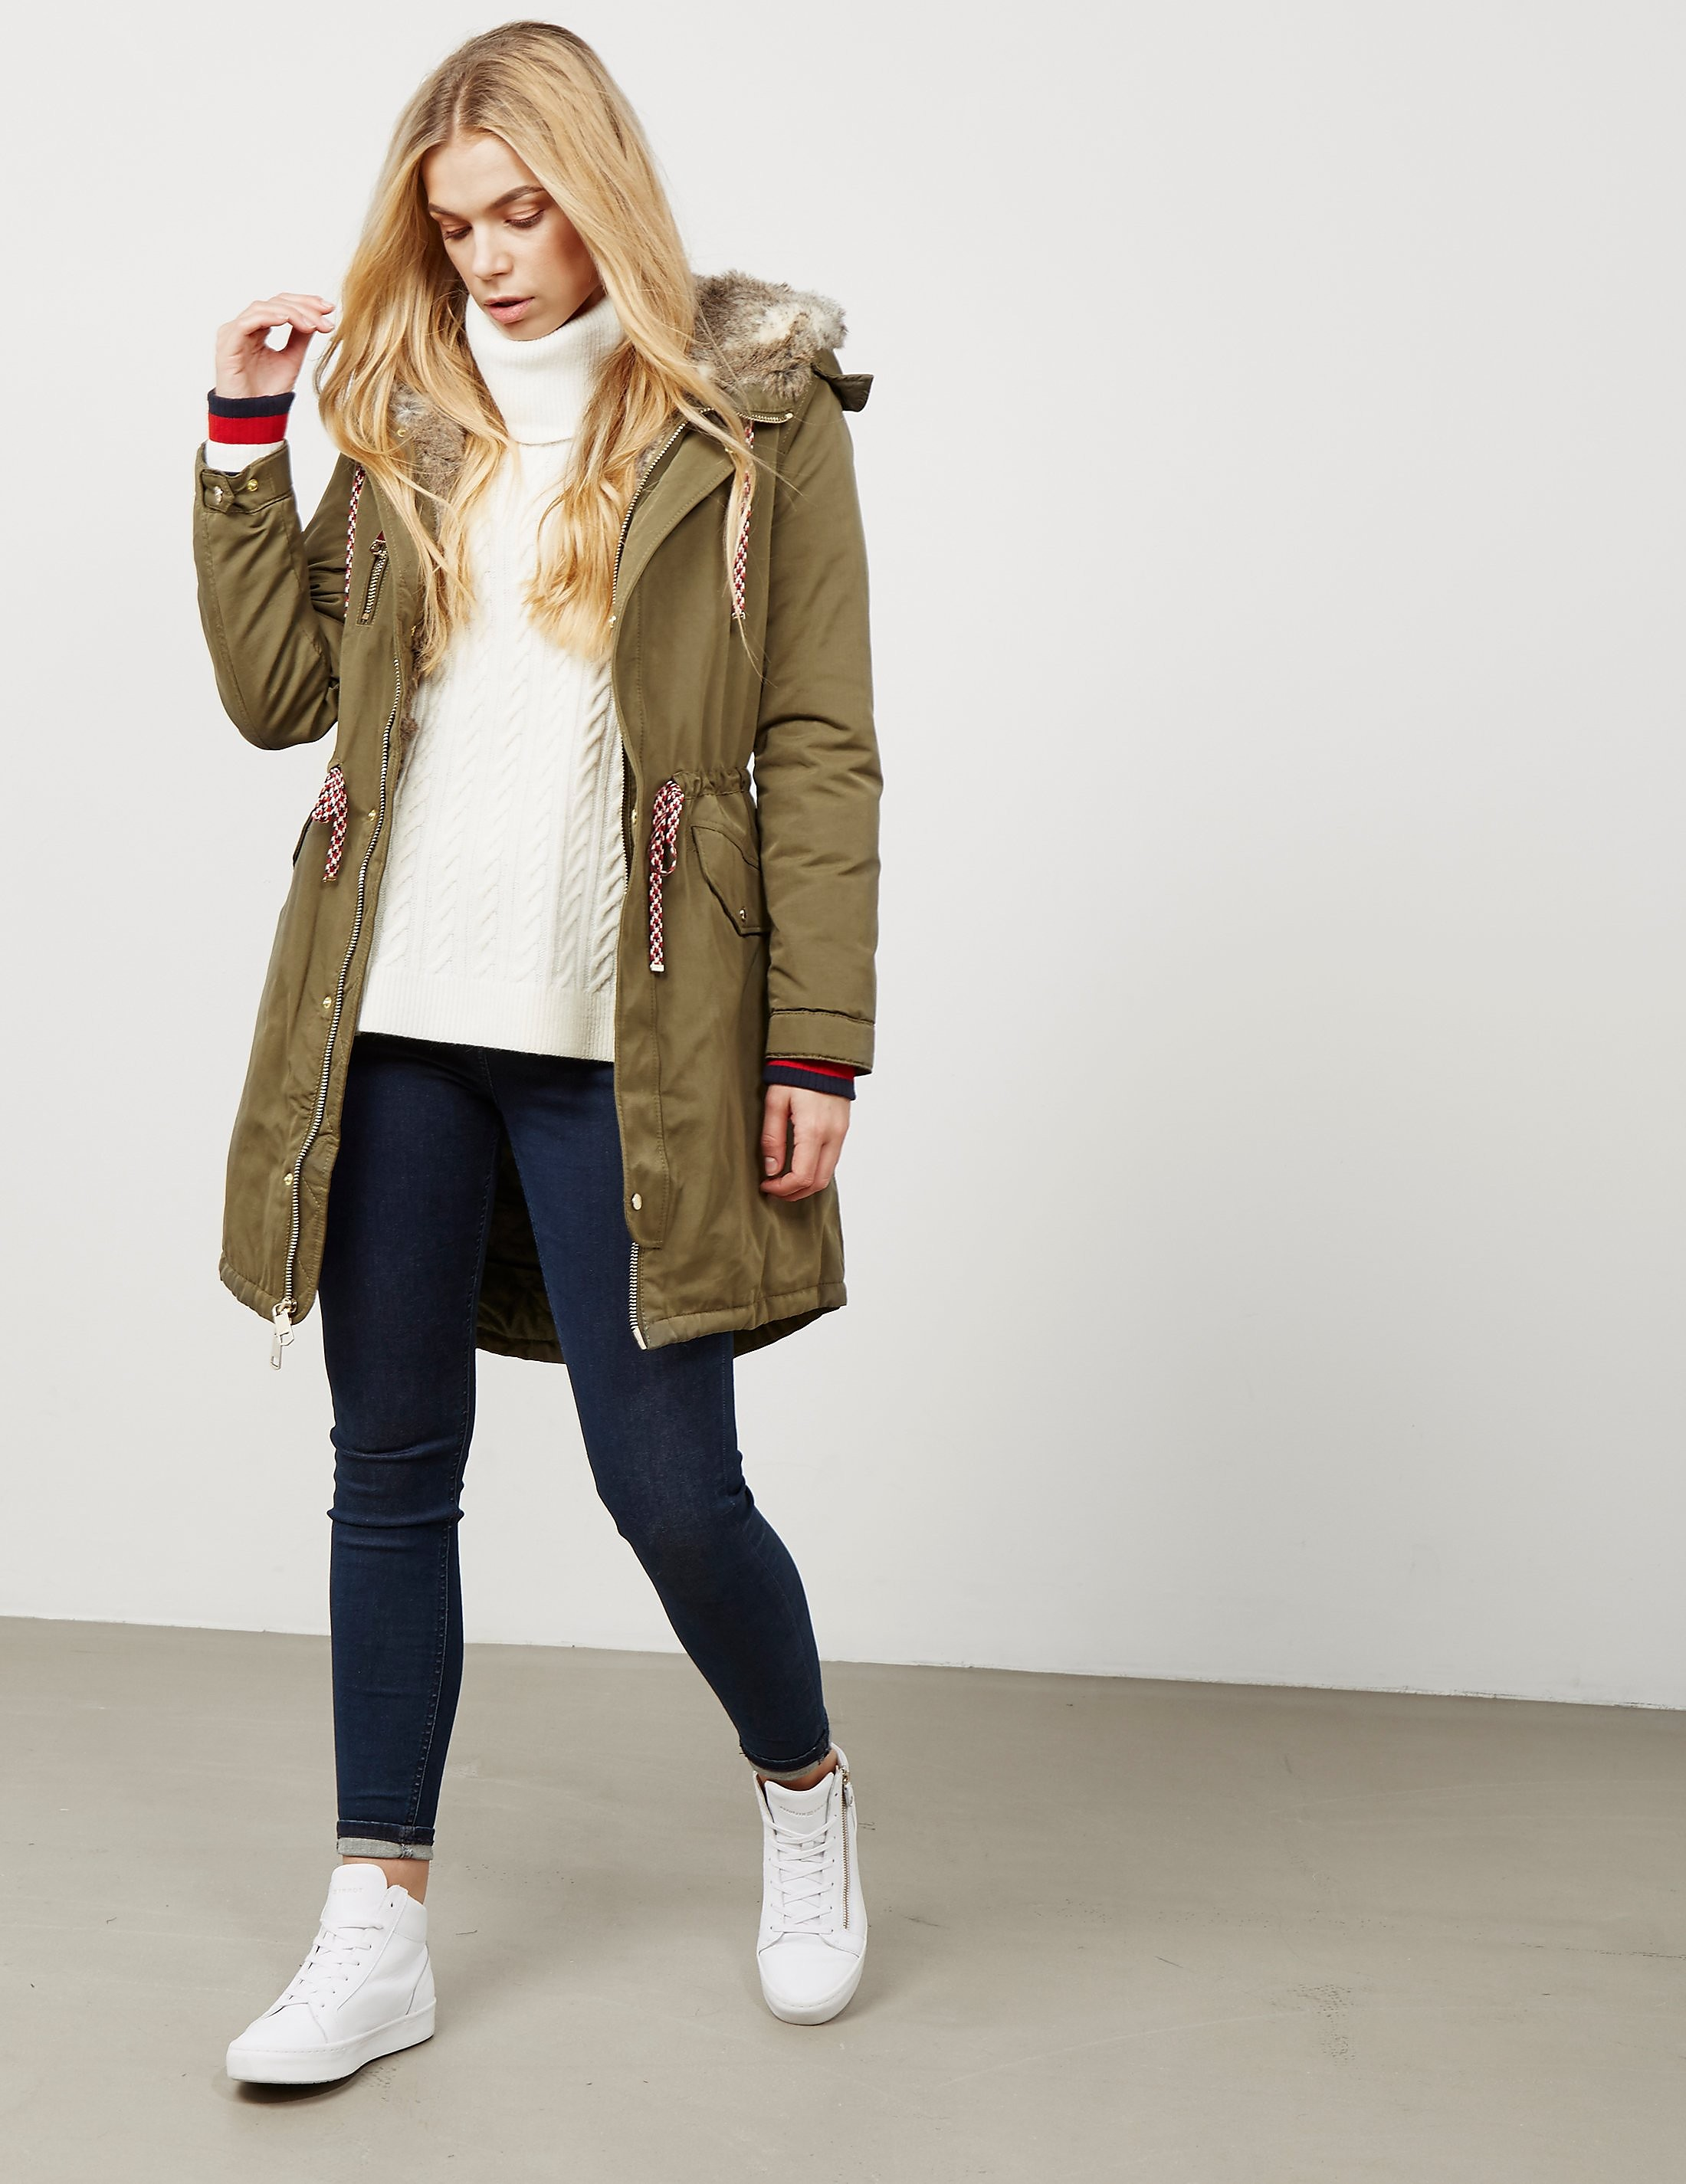 Tommy Hilfiger Cynthia Parka - Online Exclusive